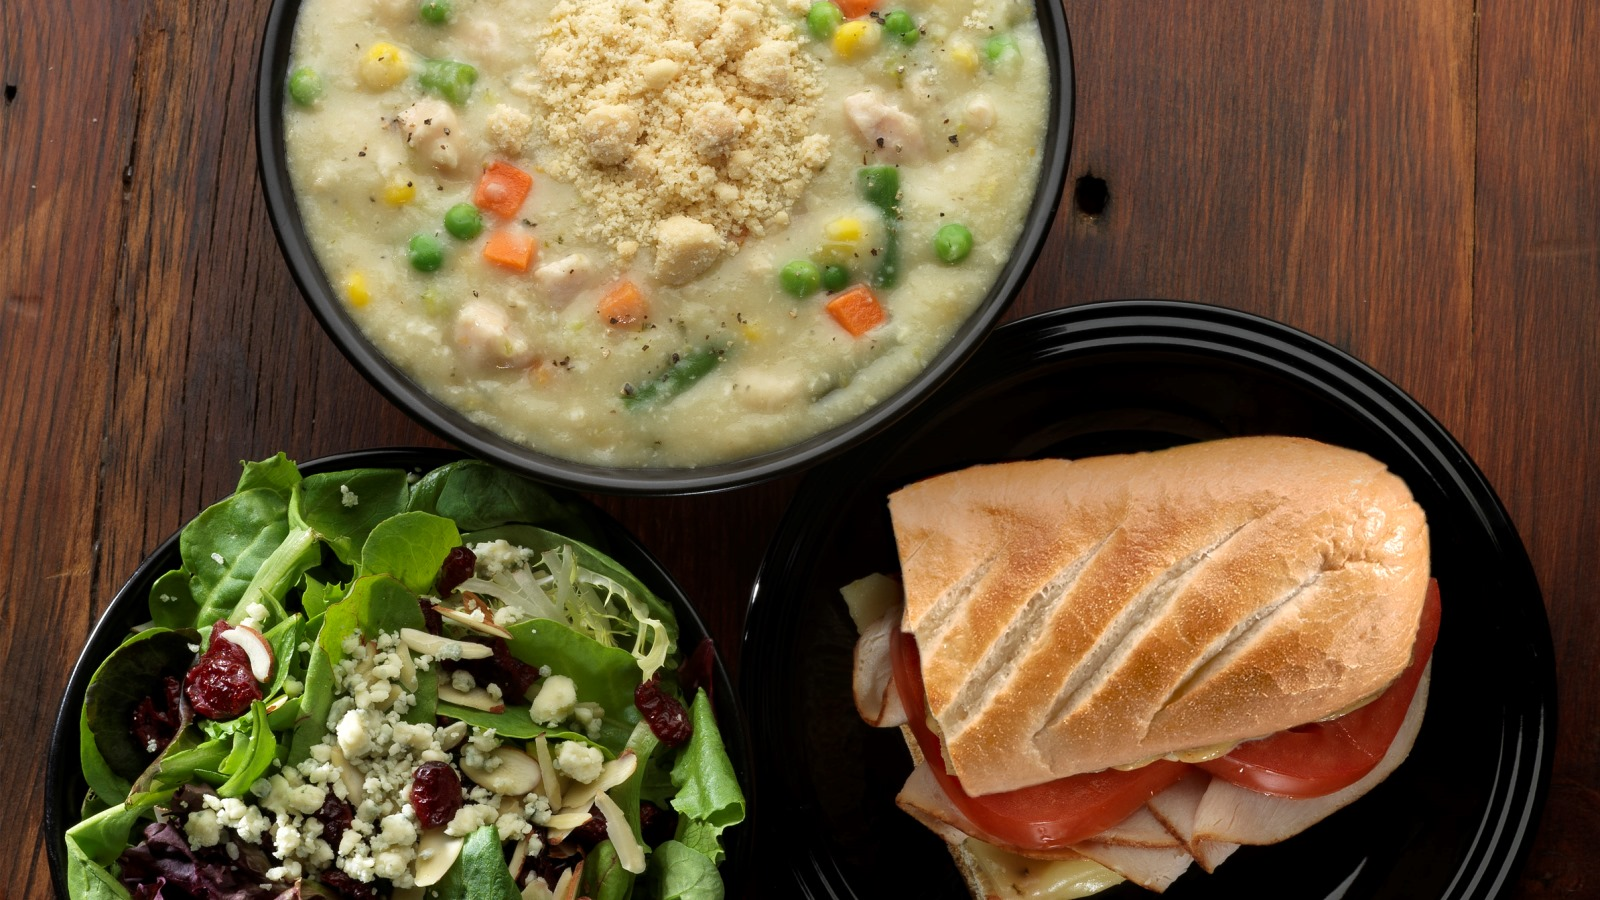 Denver Restaurants - Zoup! Denver